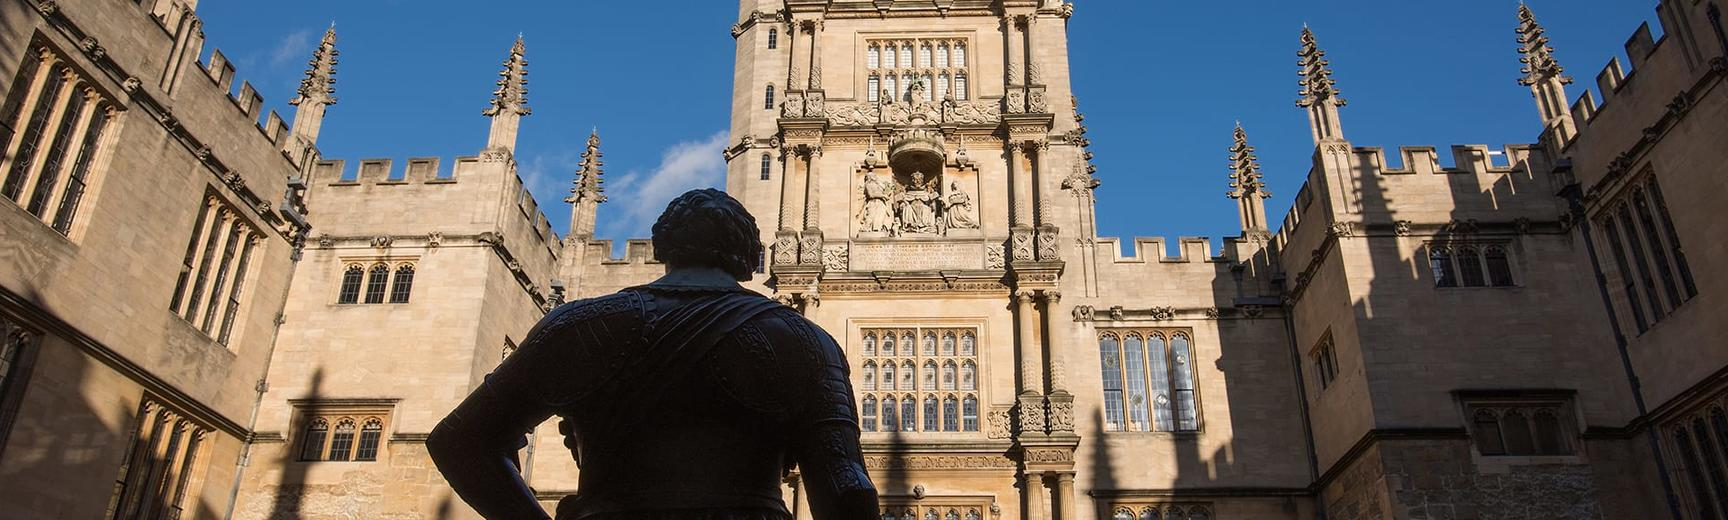 Statue of William Herbert, Earl of Pembroke, in the Bodleian Library Old Schools Quadrangle